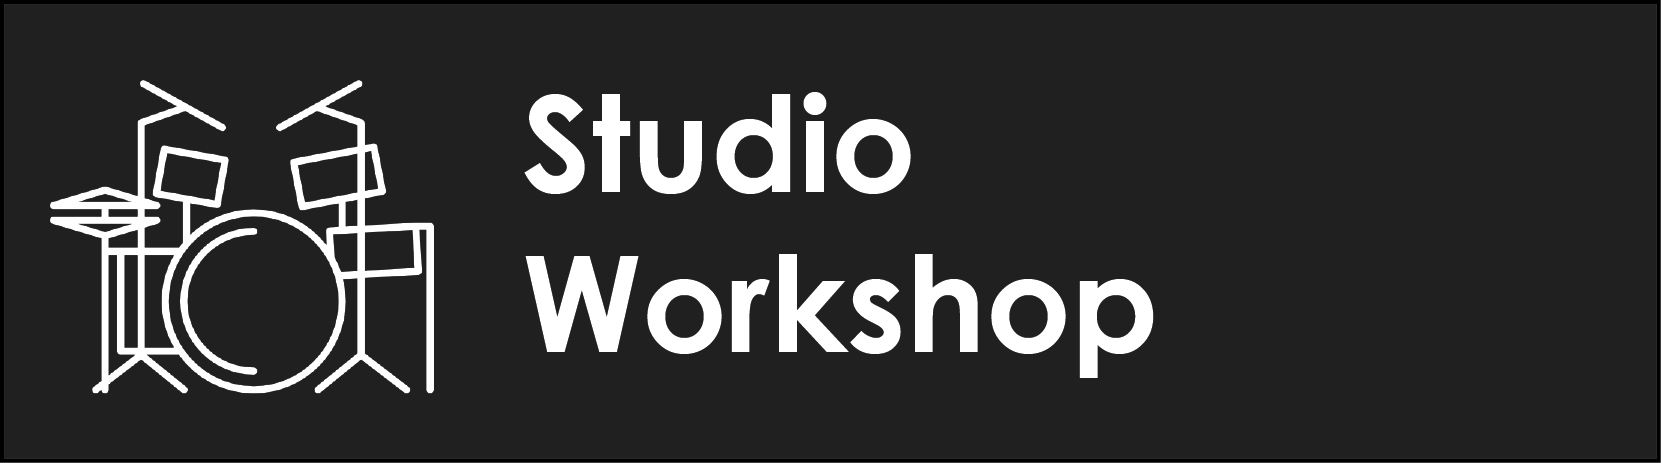 Studio Workshop.png